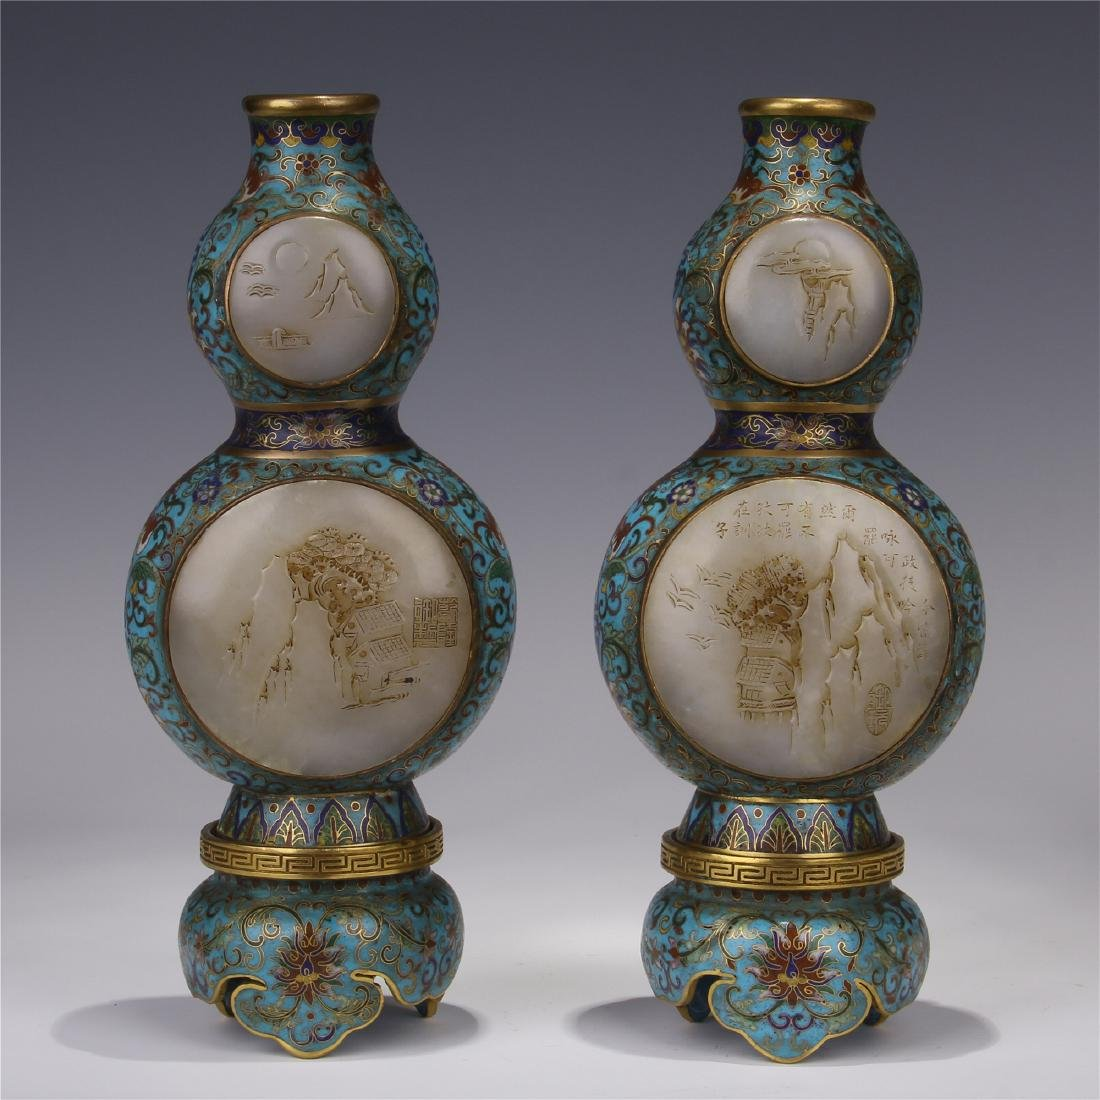 PAIR OF CHINESE WHITE JADE PLAQUE INLAID CLOISONNE